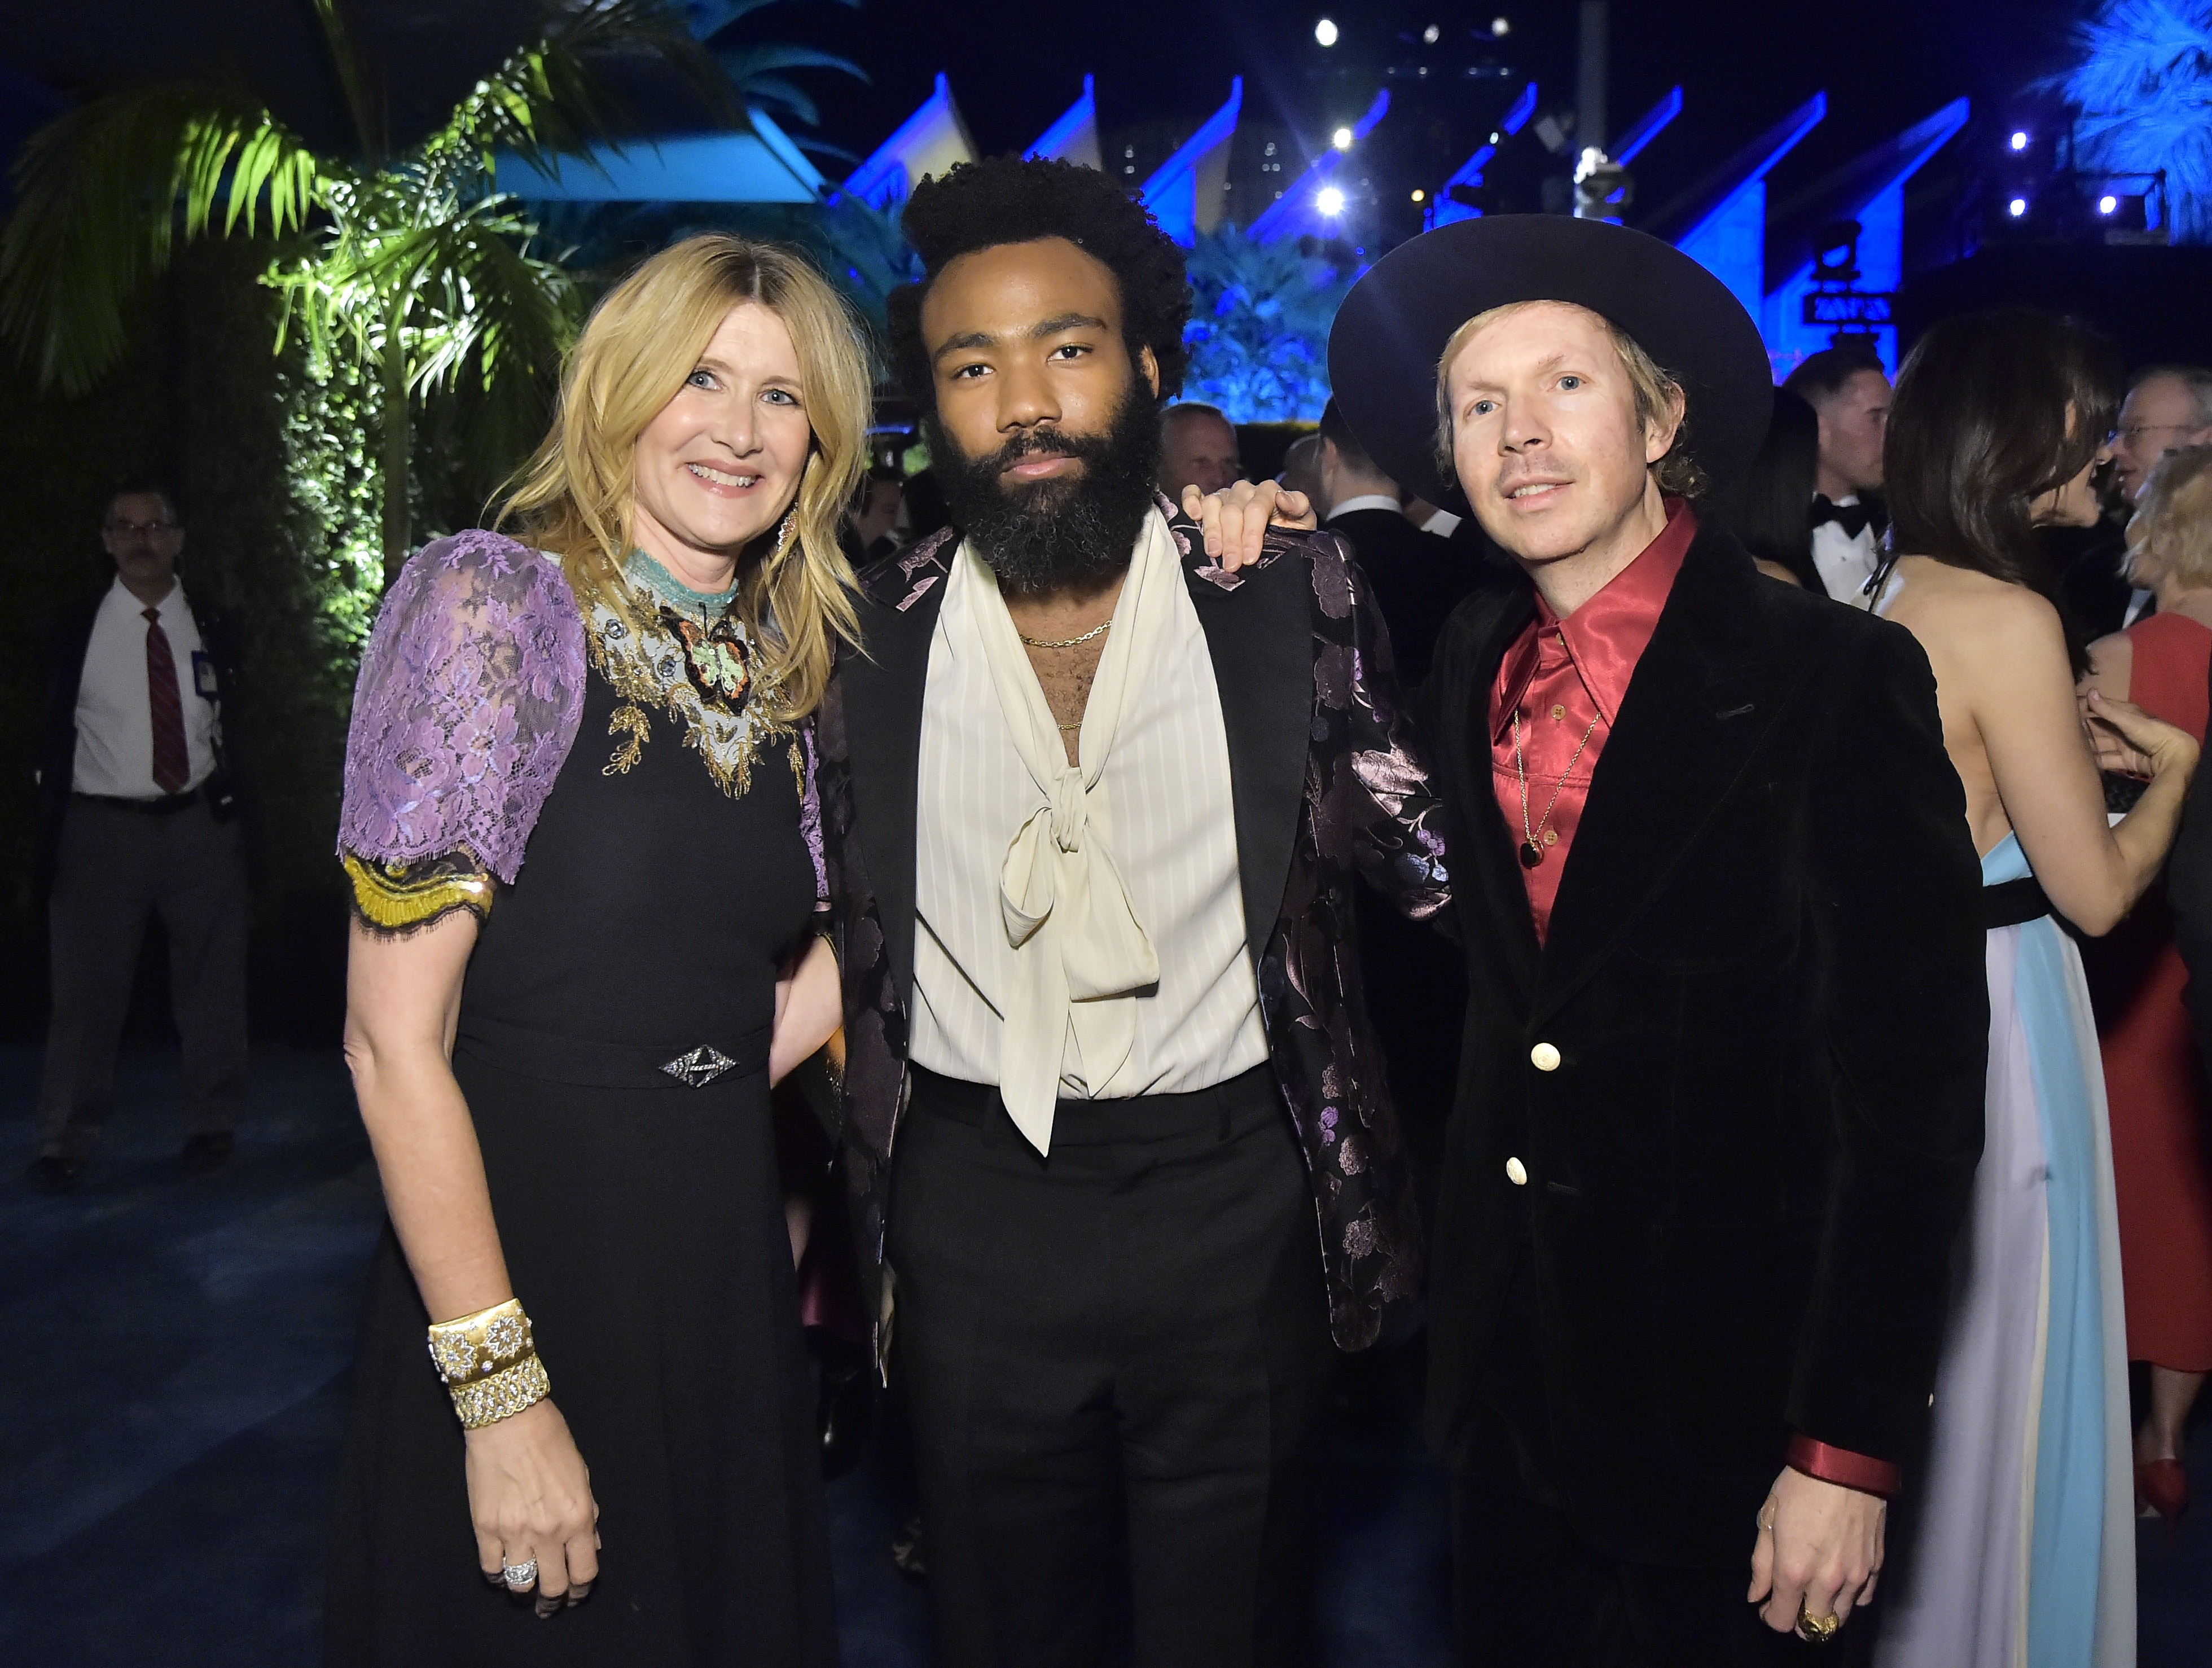 Laura Dern, Donald Glover, and Beck, photo by Stefanie Keenan/Getty Images for LACMA